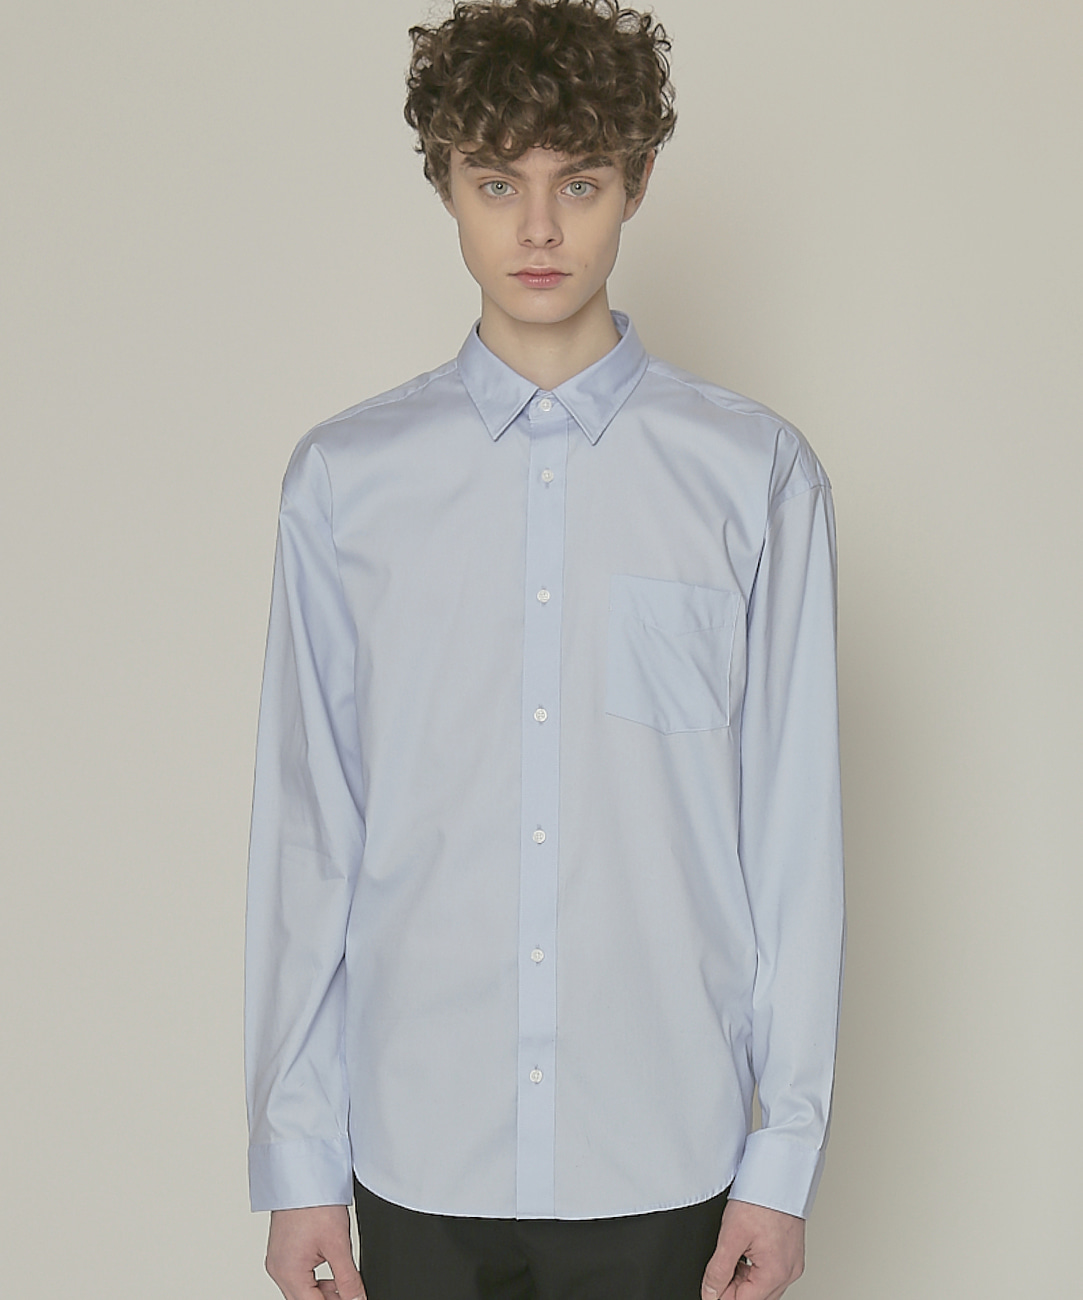 DWS ESSENTIAL SHIRTS(SORA)